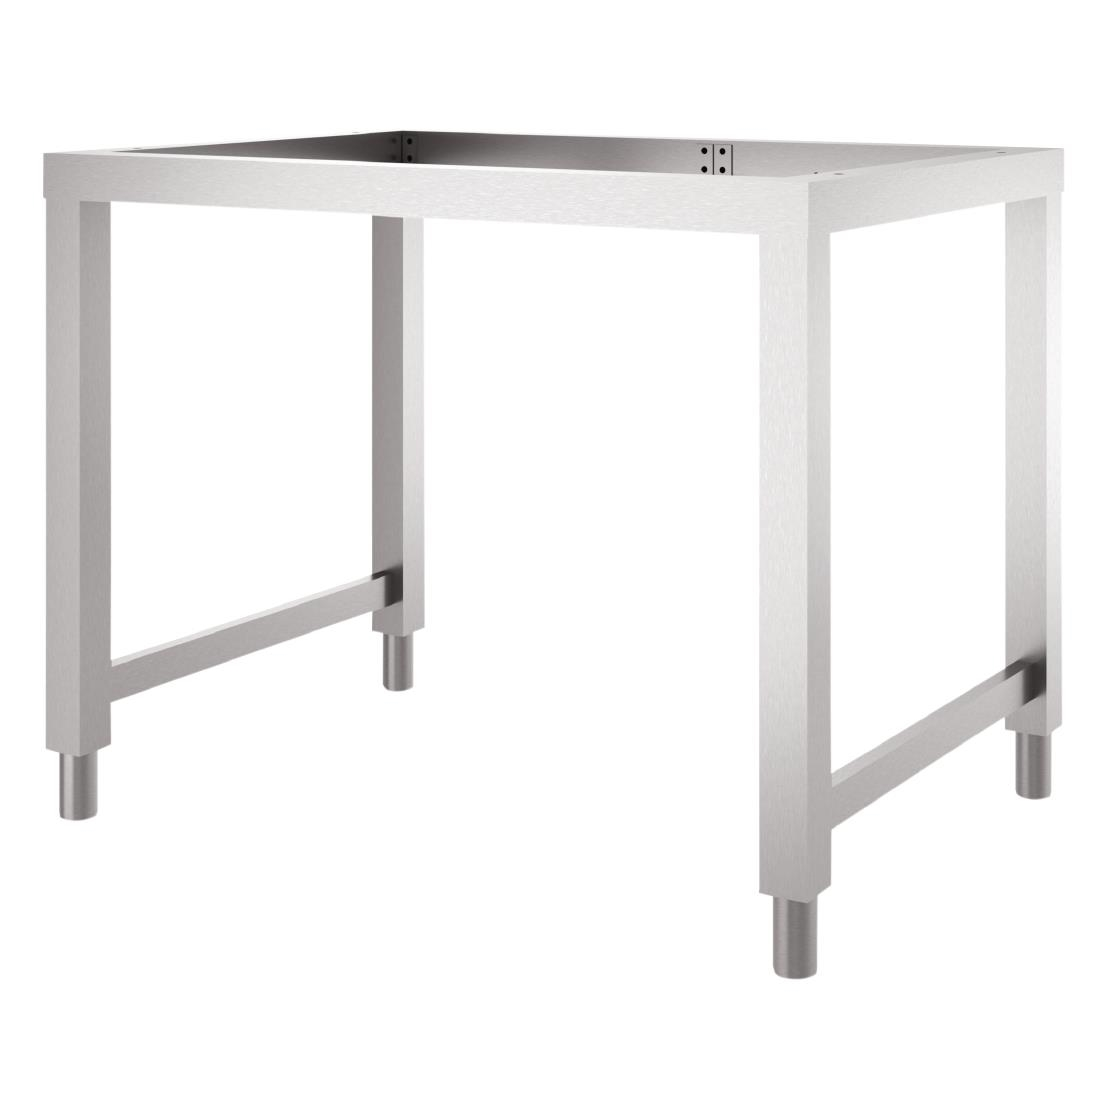 Image of Lainox Open Stainless Steel Stand NSR072